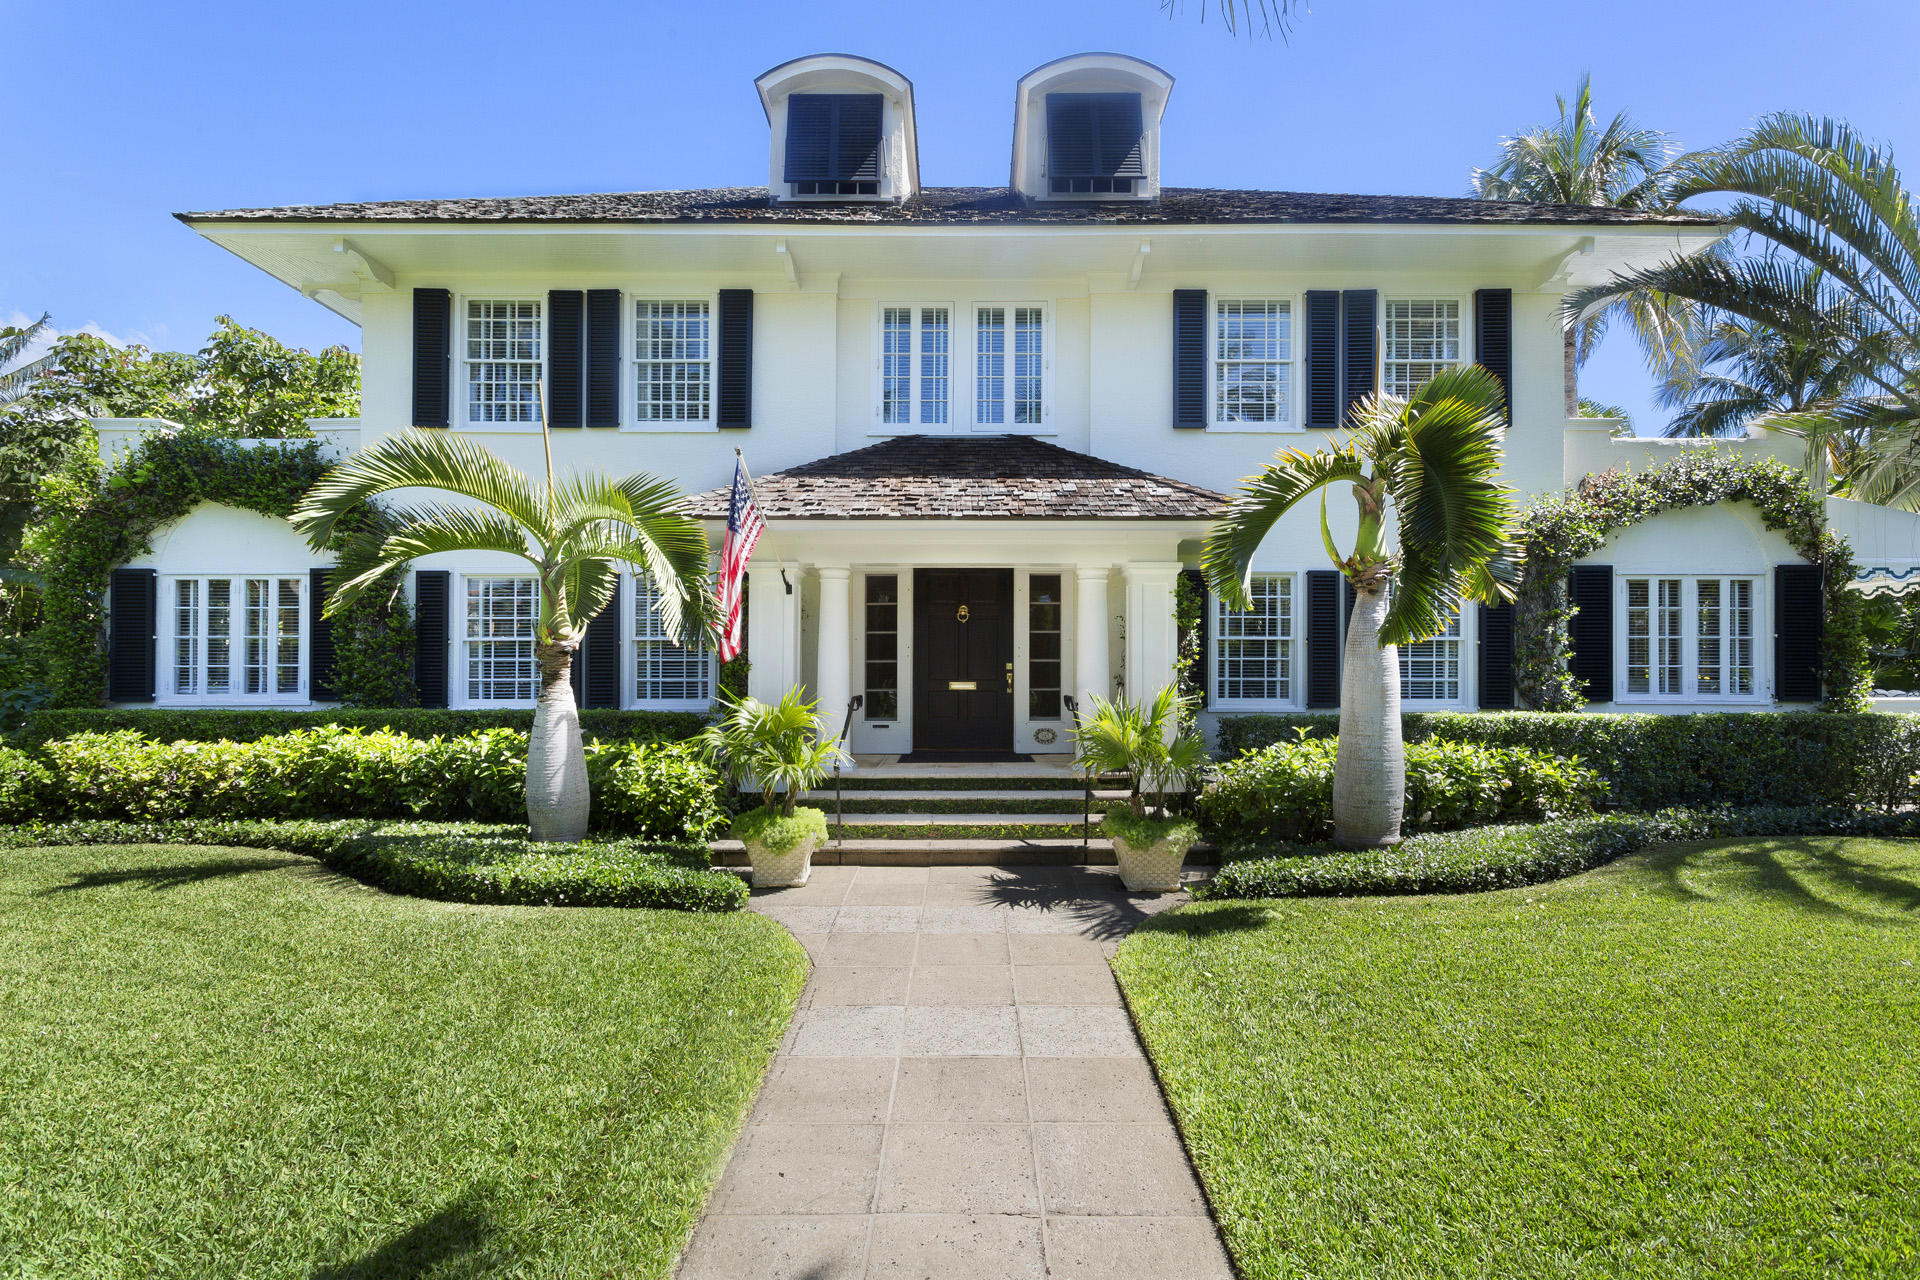 New Home for sale at 145 Seaspray Avenue in Palm Beach